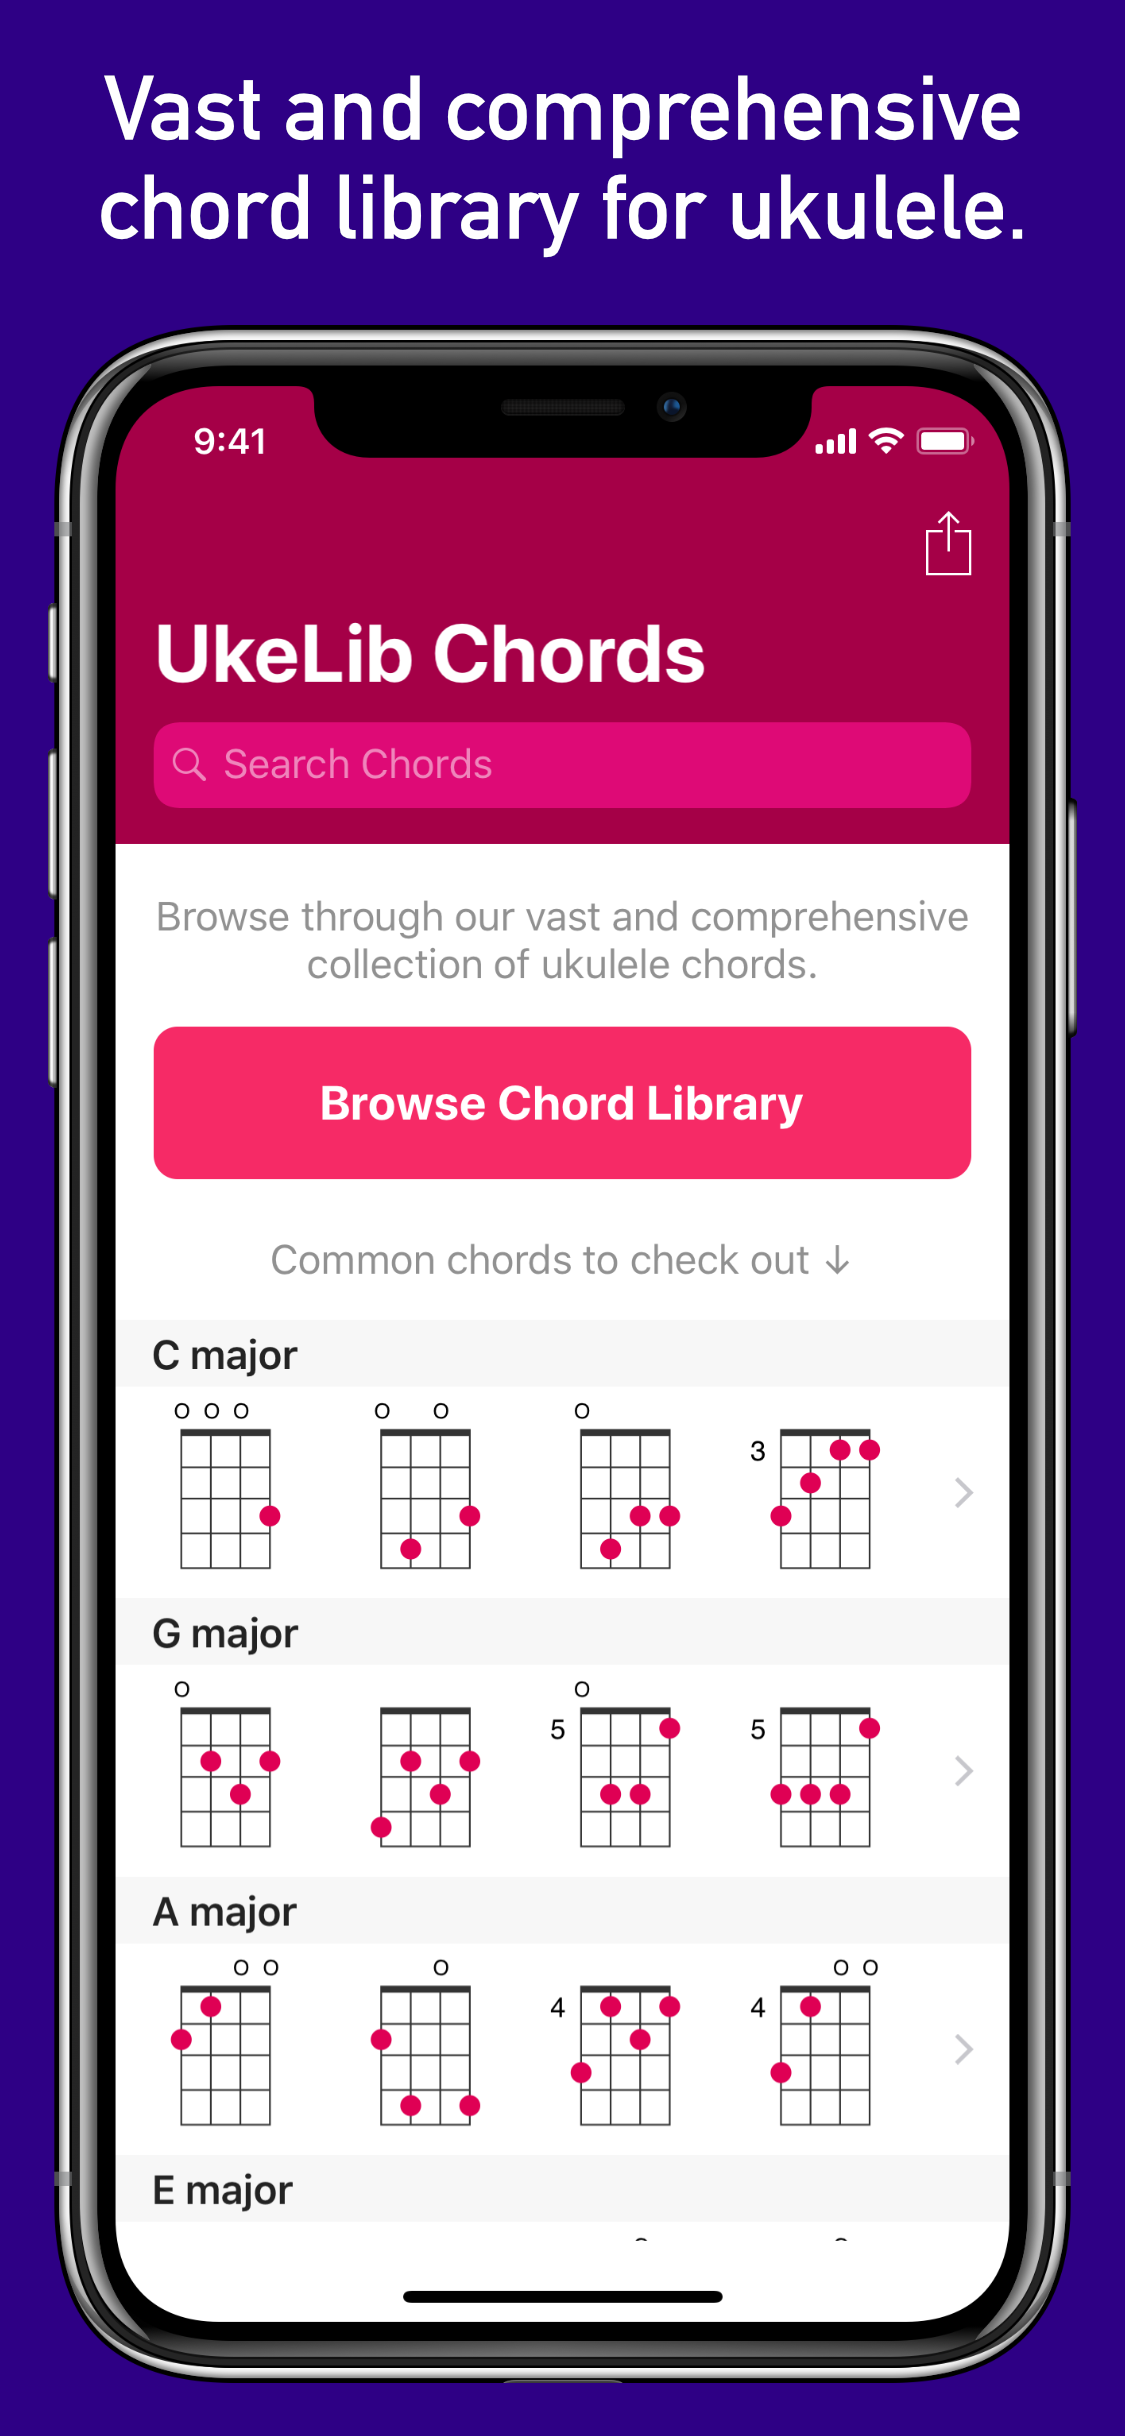 Vast and comprehensive chord library for ukulele